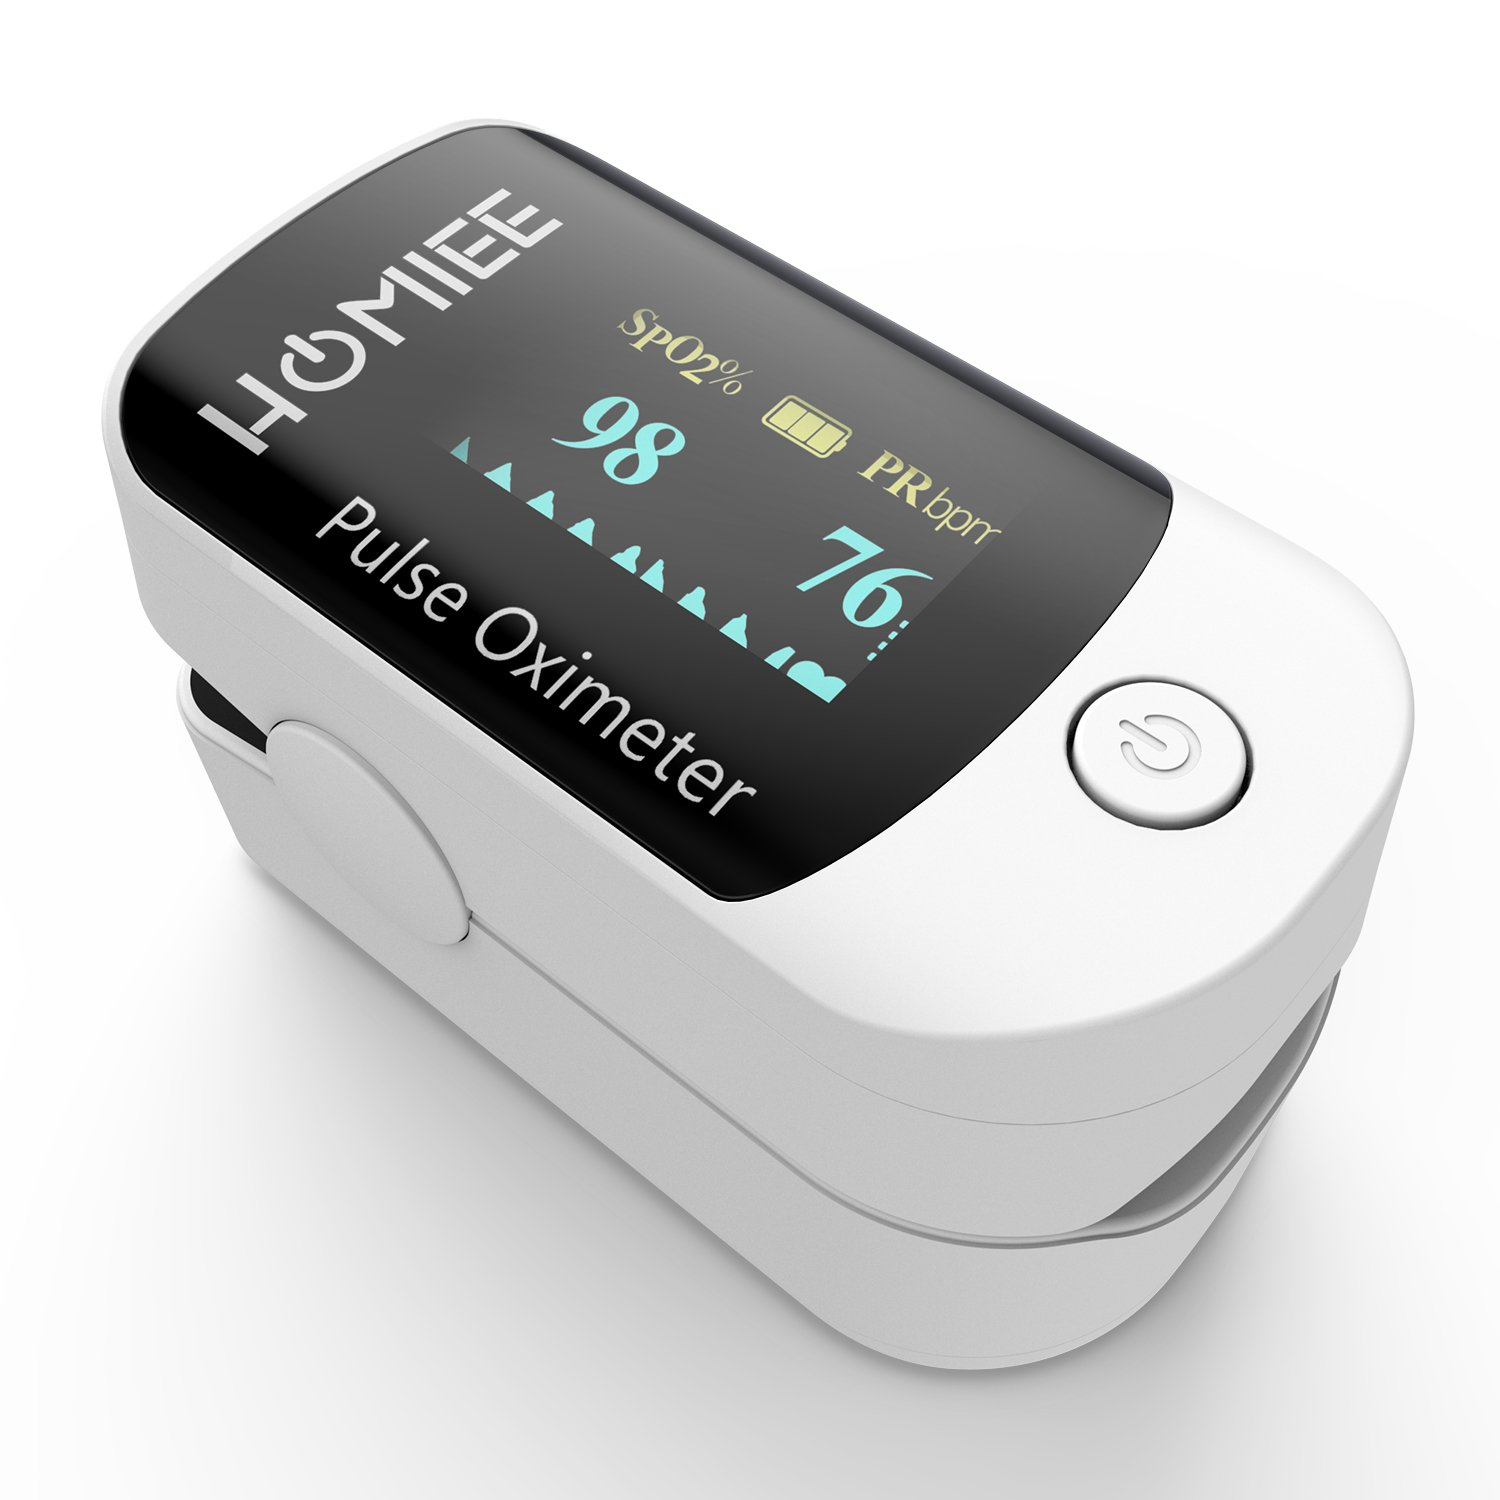 HOMIEE Blood Oxygen Saturation Monitor with Alarm, Auto-Sleep Function, 4 Directions OLED Display, Silicone Cover, Carrying Bag, Batteries and Lanyard, Sport and Aviation Use Only (White)